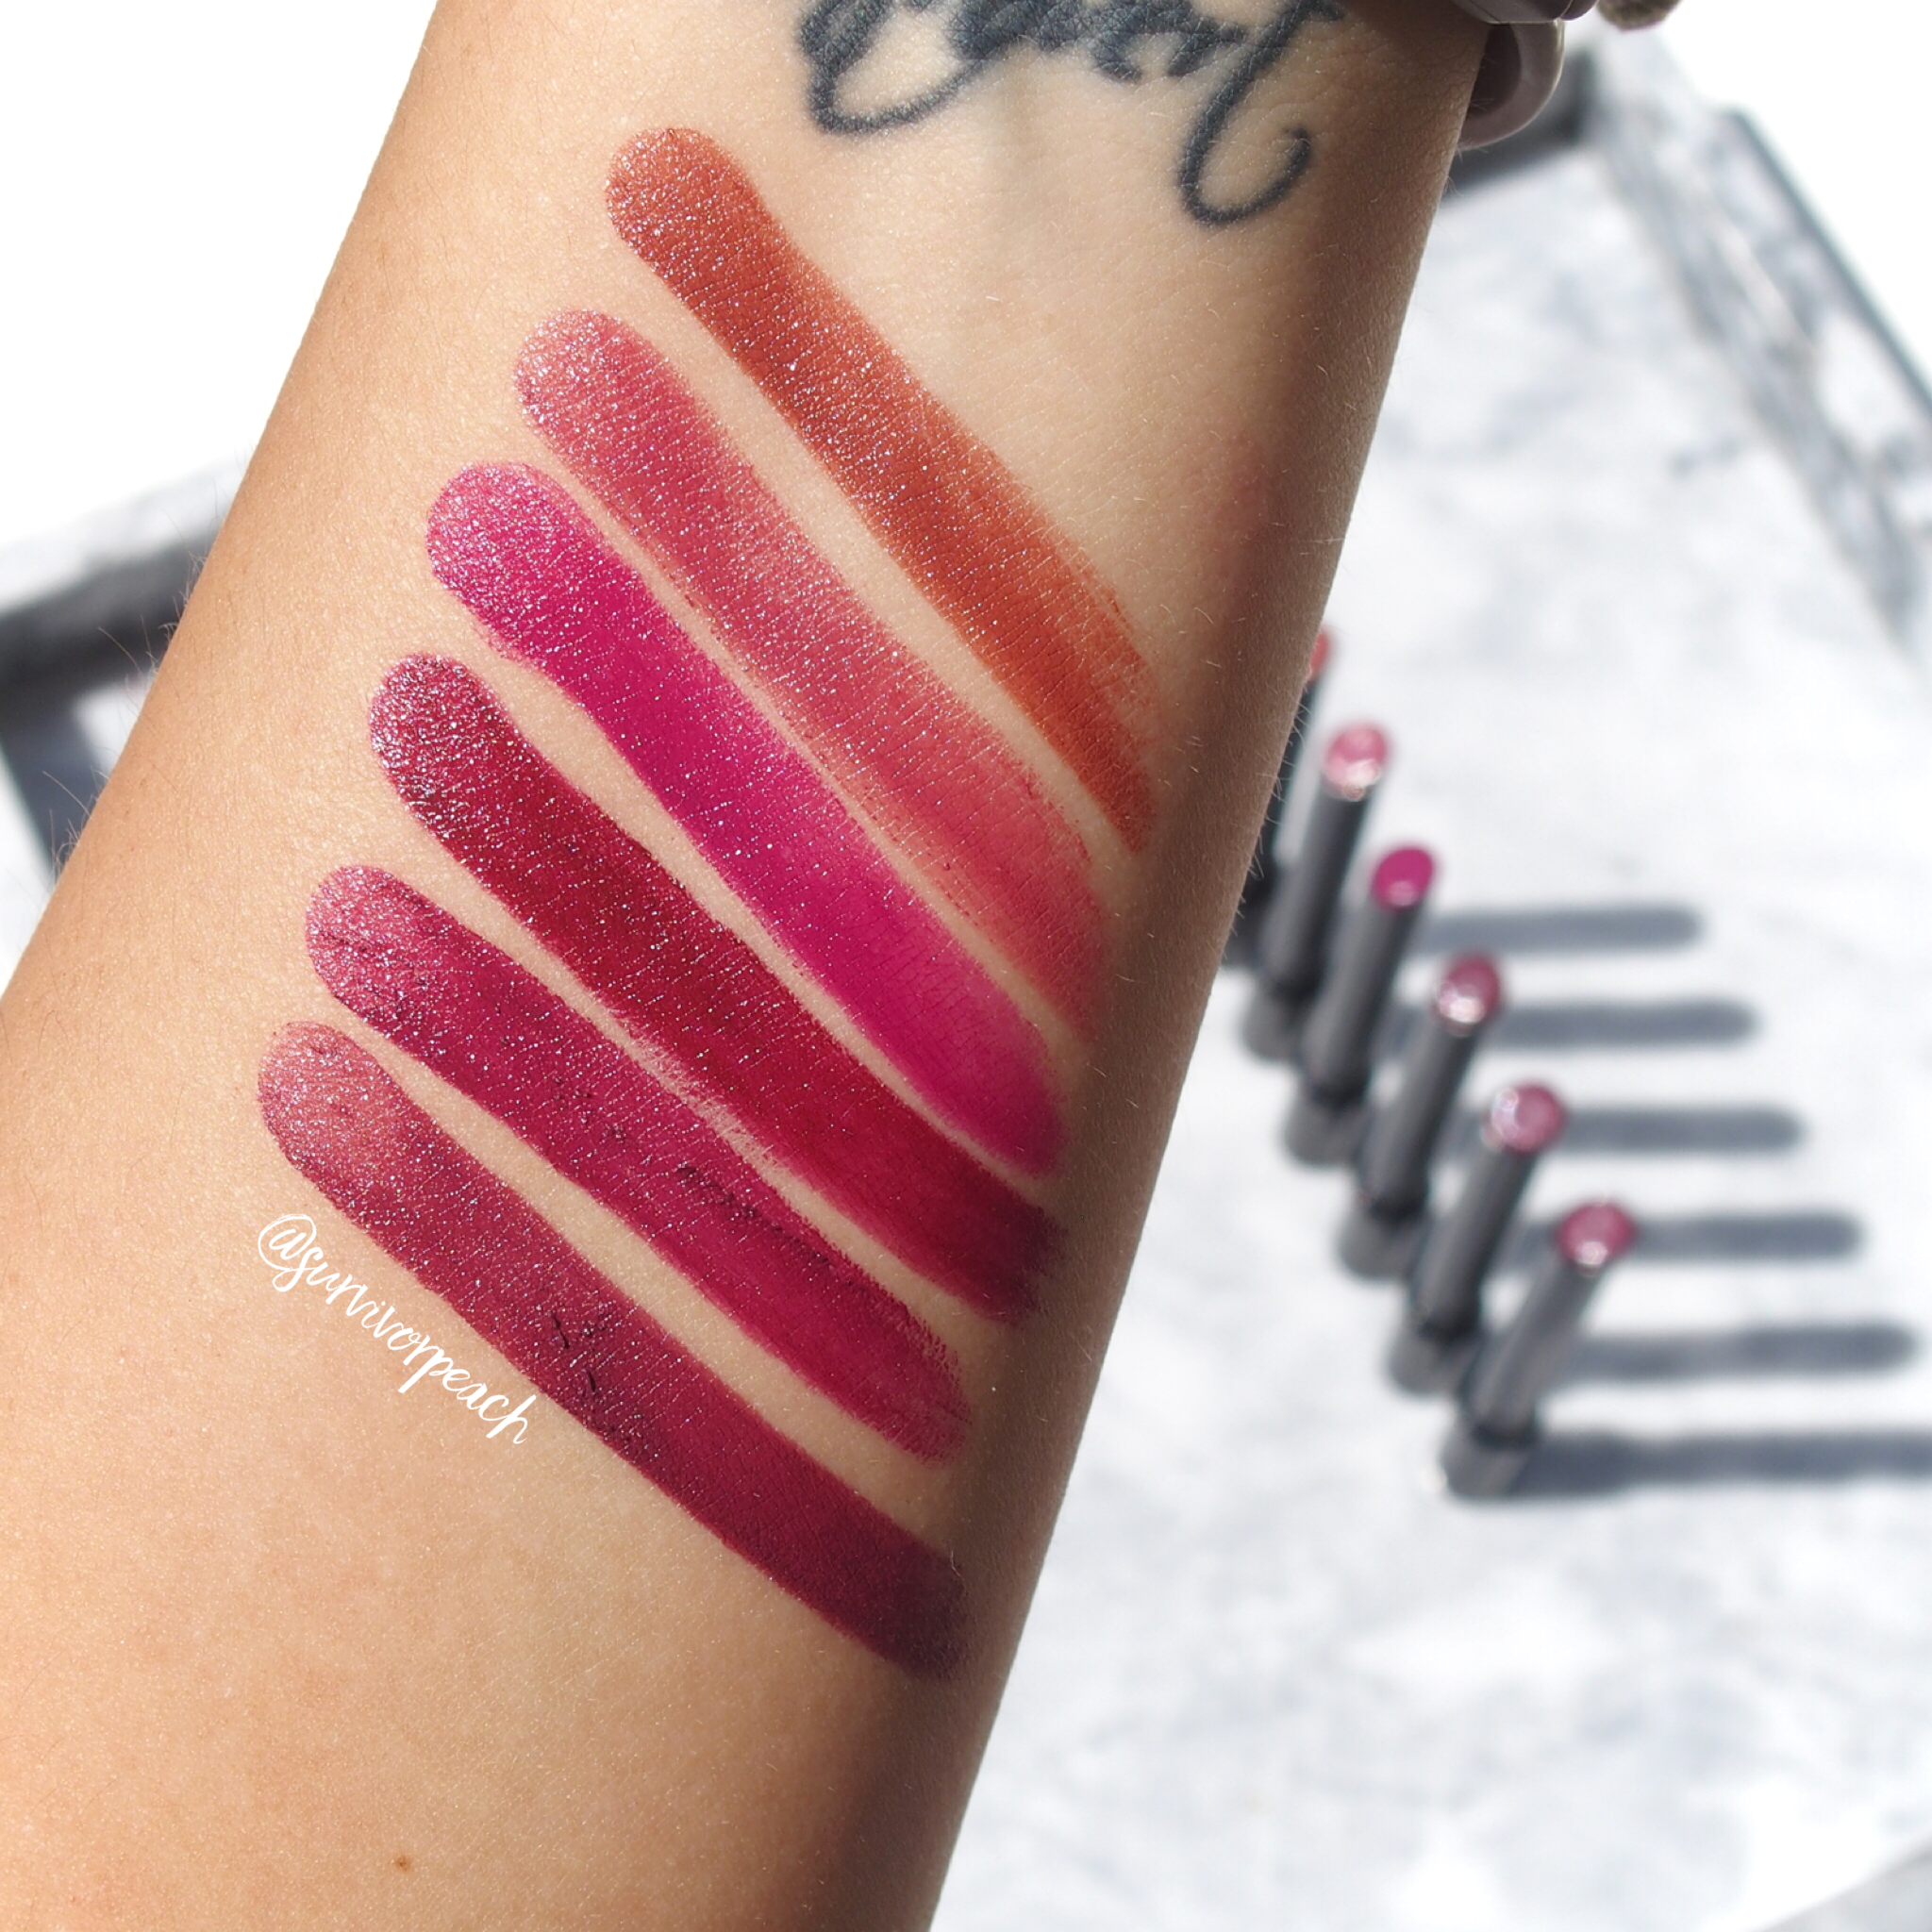 Swatches of the Hourglass Confession Lipsticks in shades I've Been, One Time, When I'm With You, When I'm Alone, If I Could, I Hide My